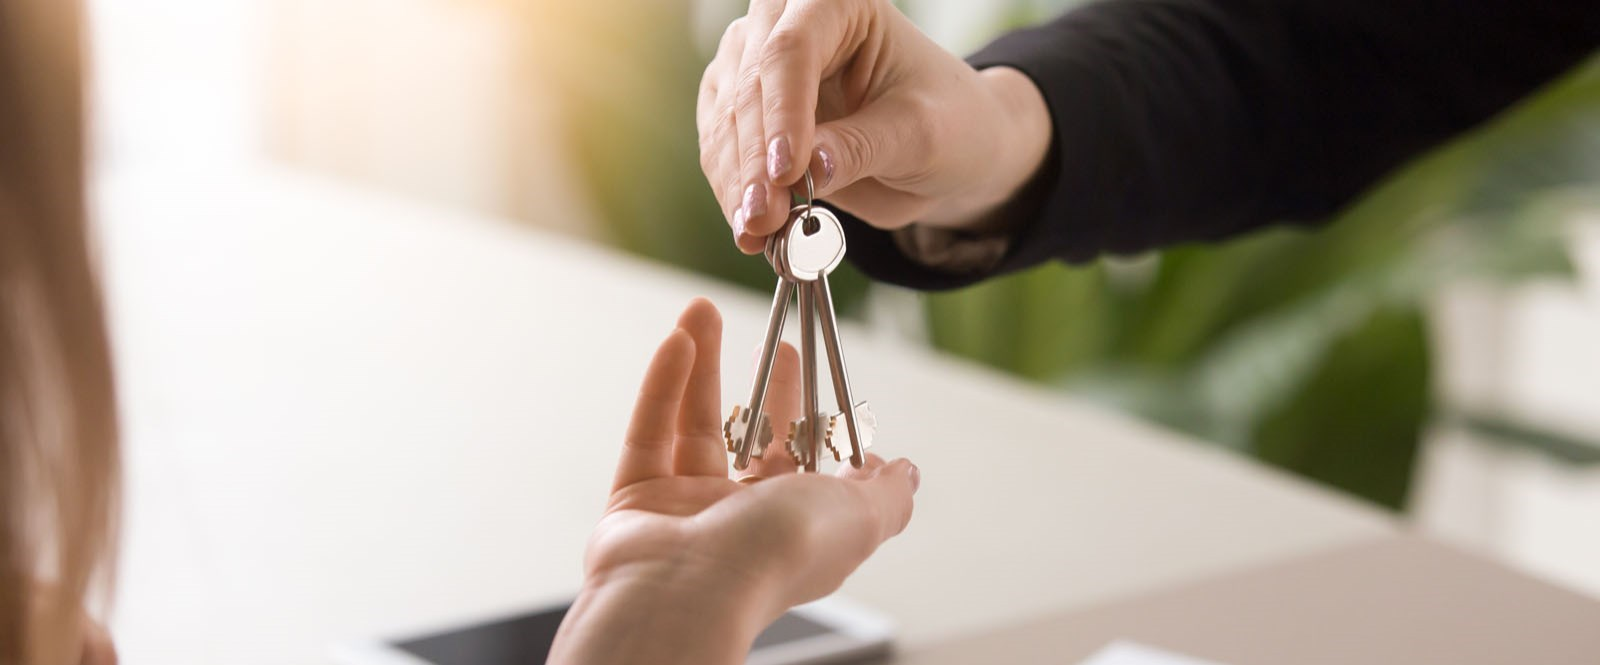 person handing house keys to tenant